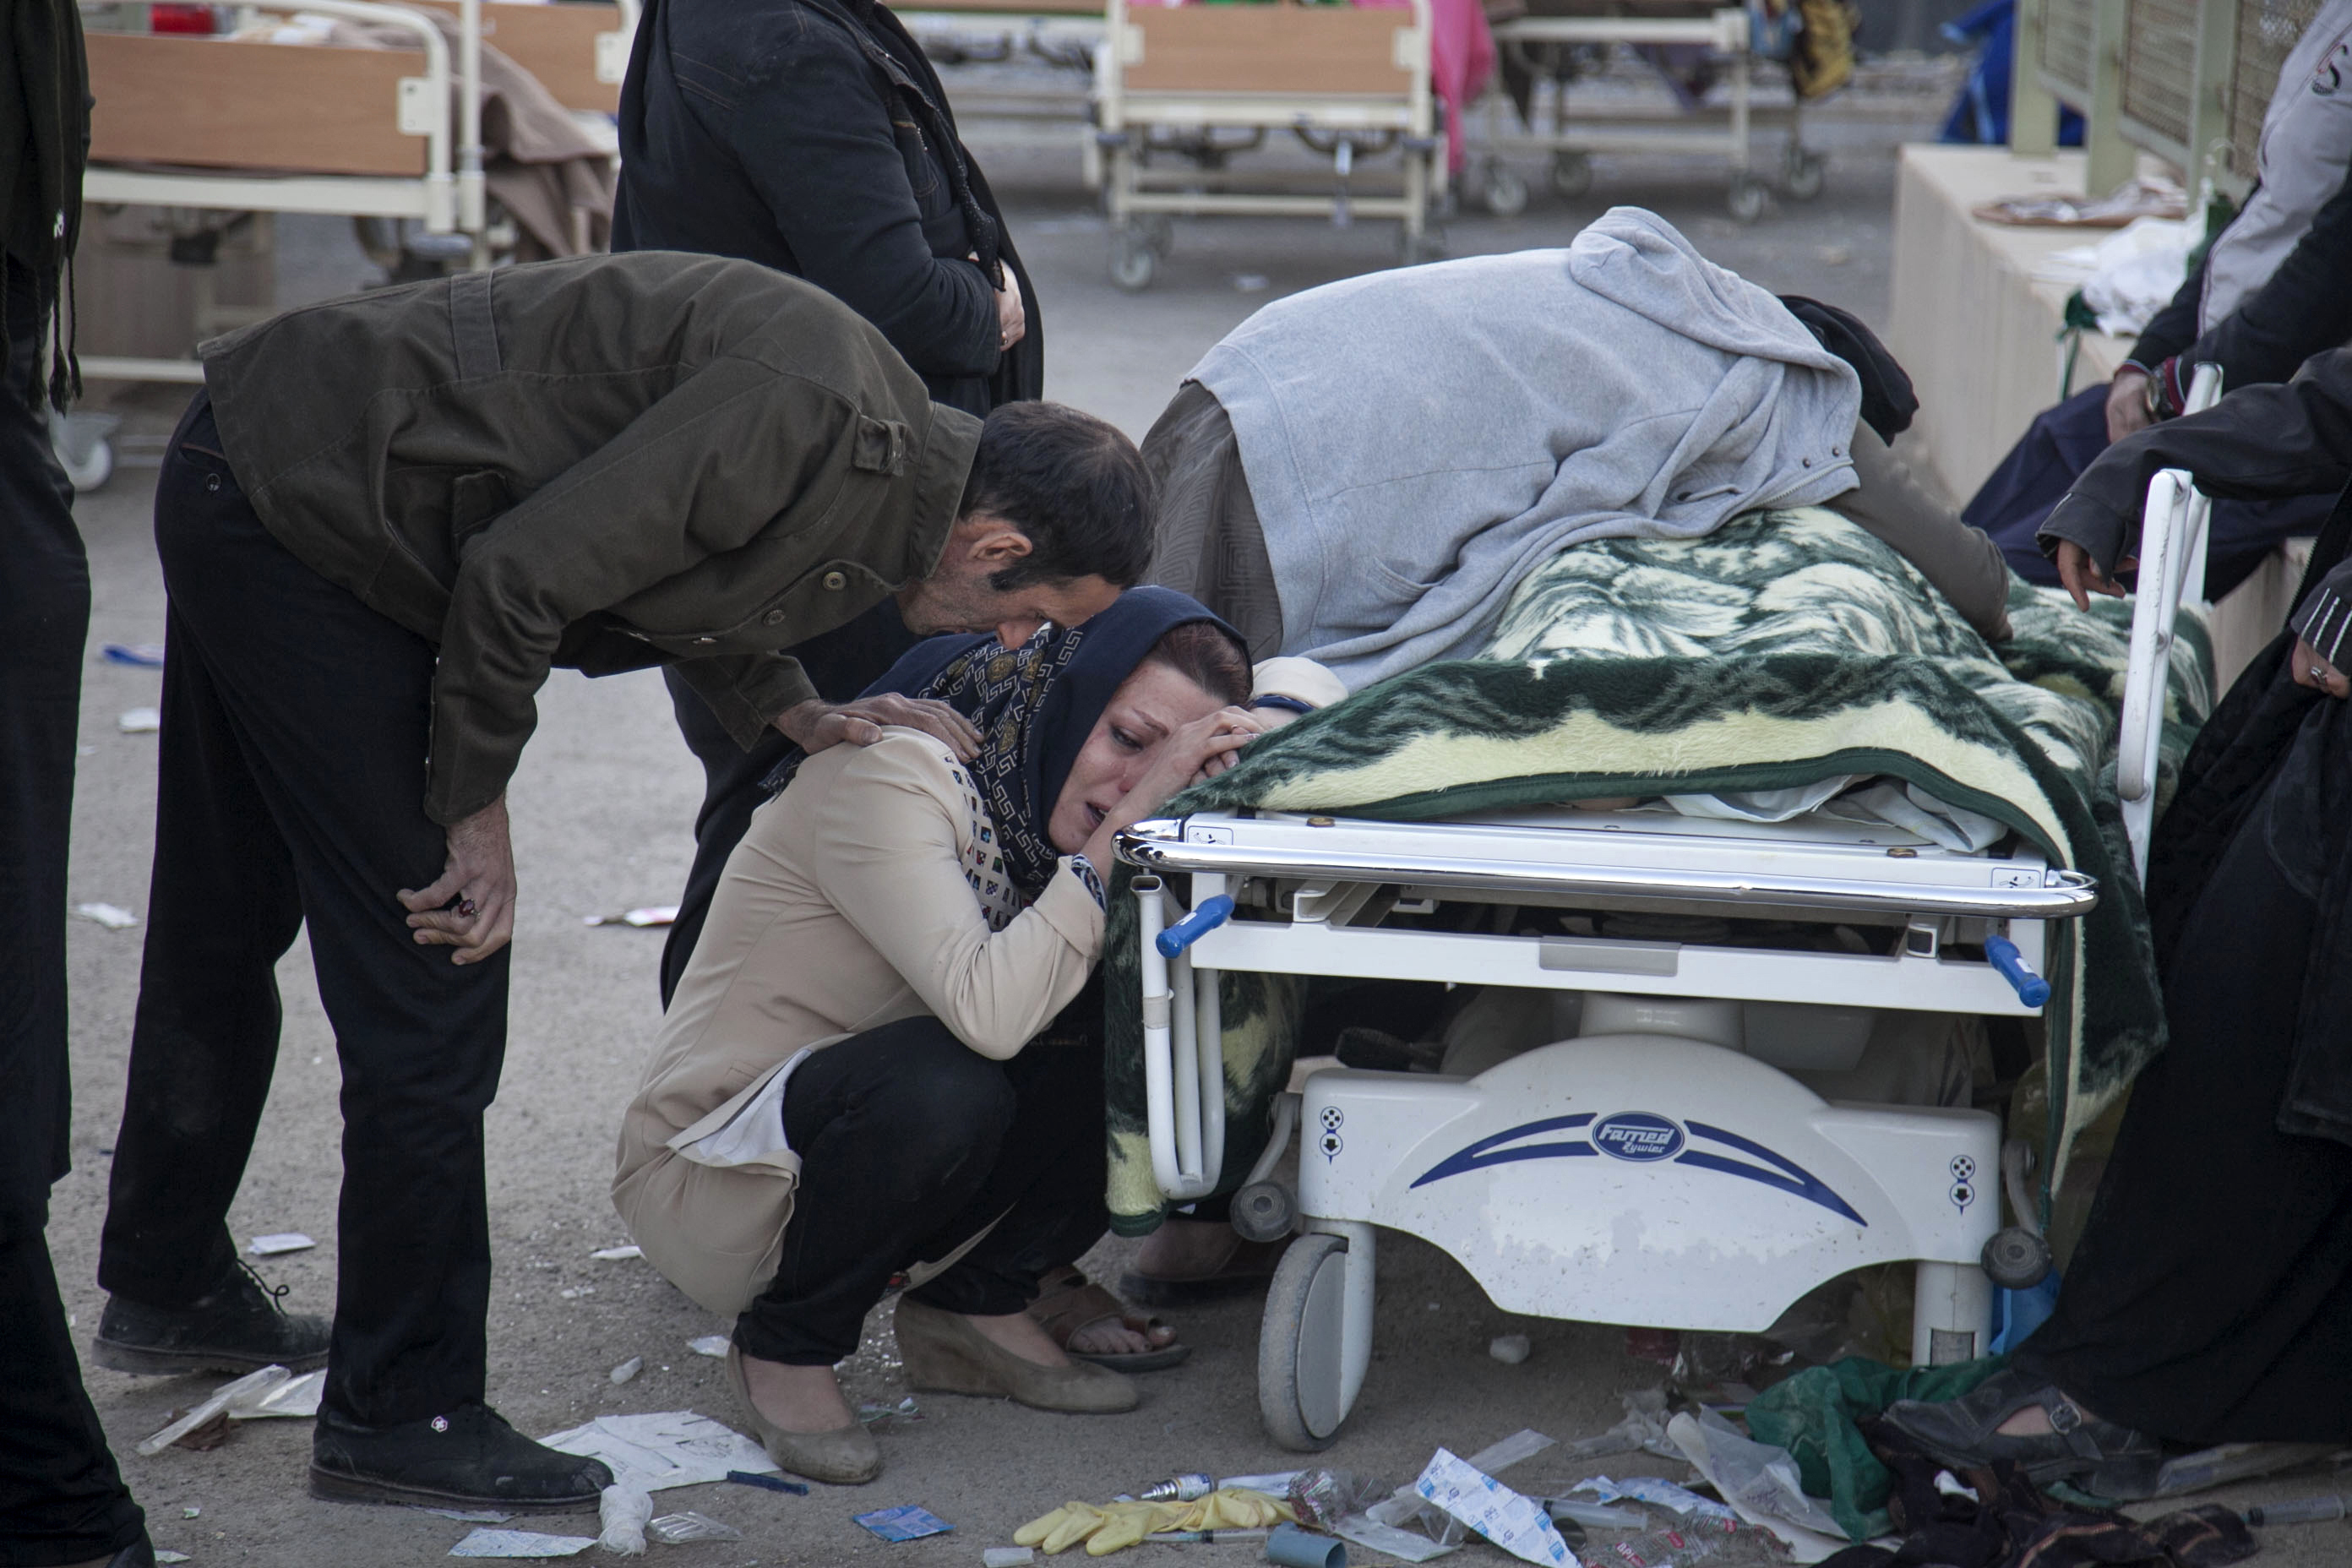 "<div class=""meta image-caption""><div class=""origin-logo origin-image none""><span>none</span></div><span class=""caption-text"">In this photo provided by Tasnim News Agency, relatives weep over the body of an earthquake victim,  in Sarpol-e-Zahab, western Iran, Monday, Nov. 13, 2017. (Farzad Menati/Tasnim News Agency via AP)</span></div>"